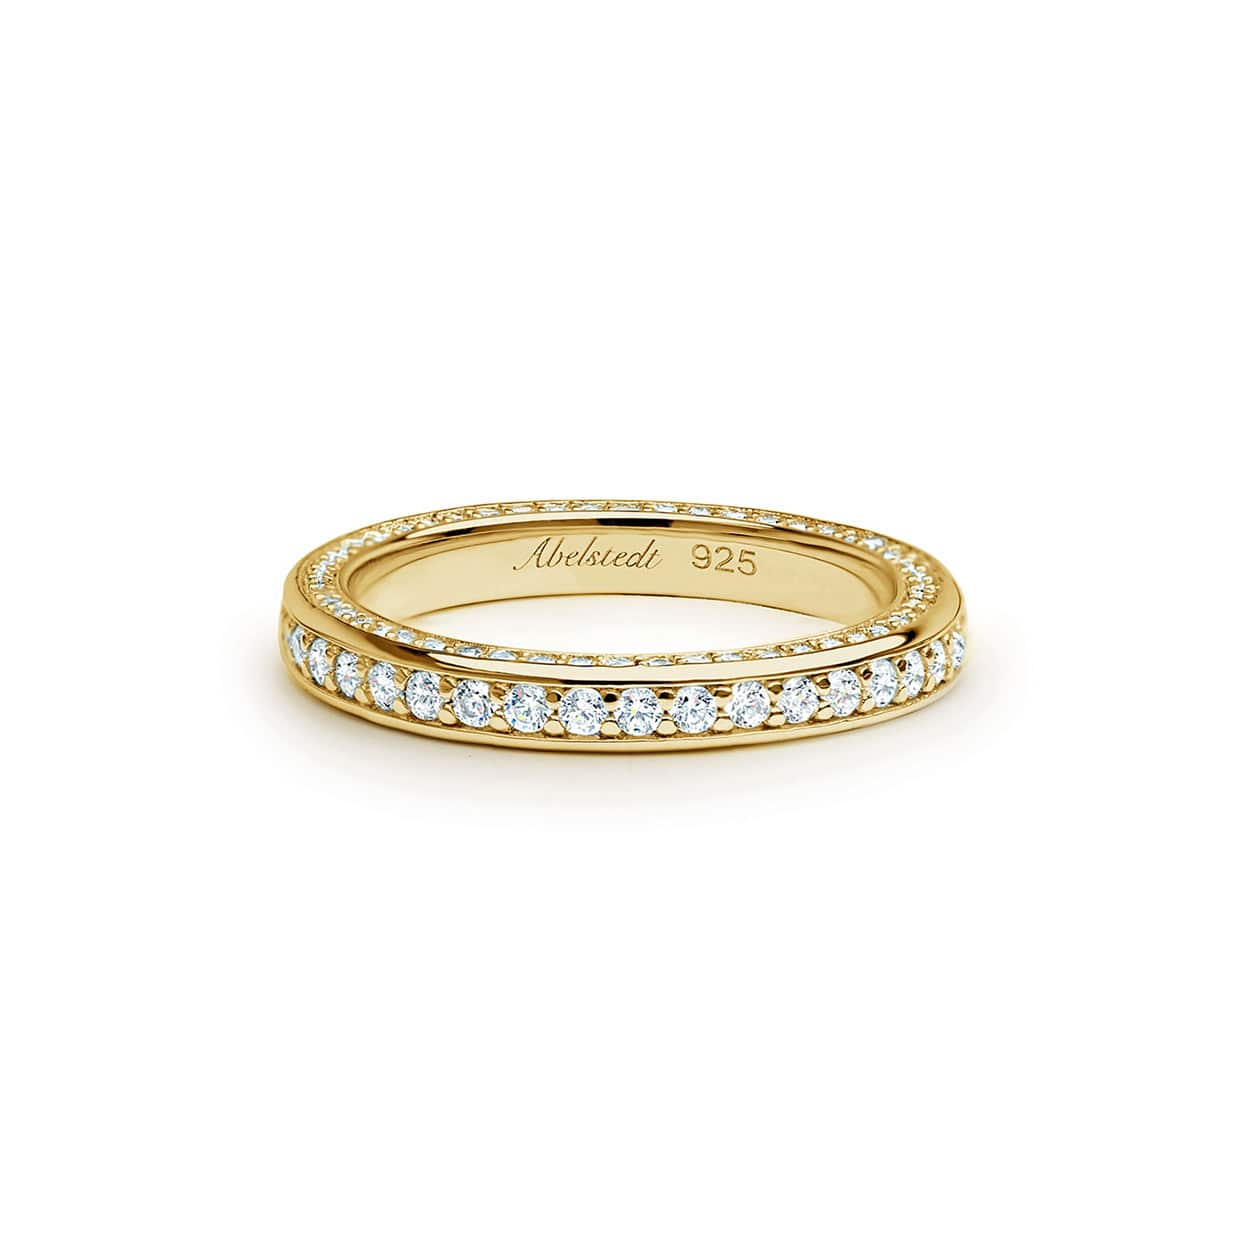 Oxford Gold Band Ring With Side Stone - Abelstedt